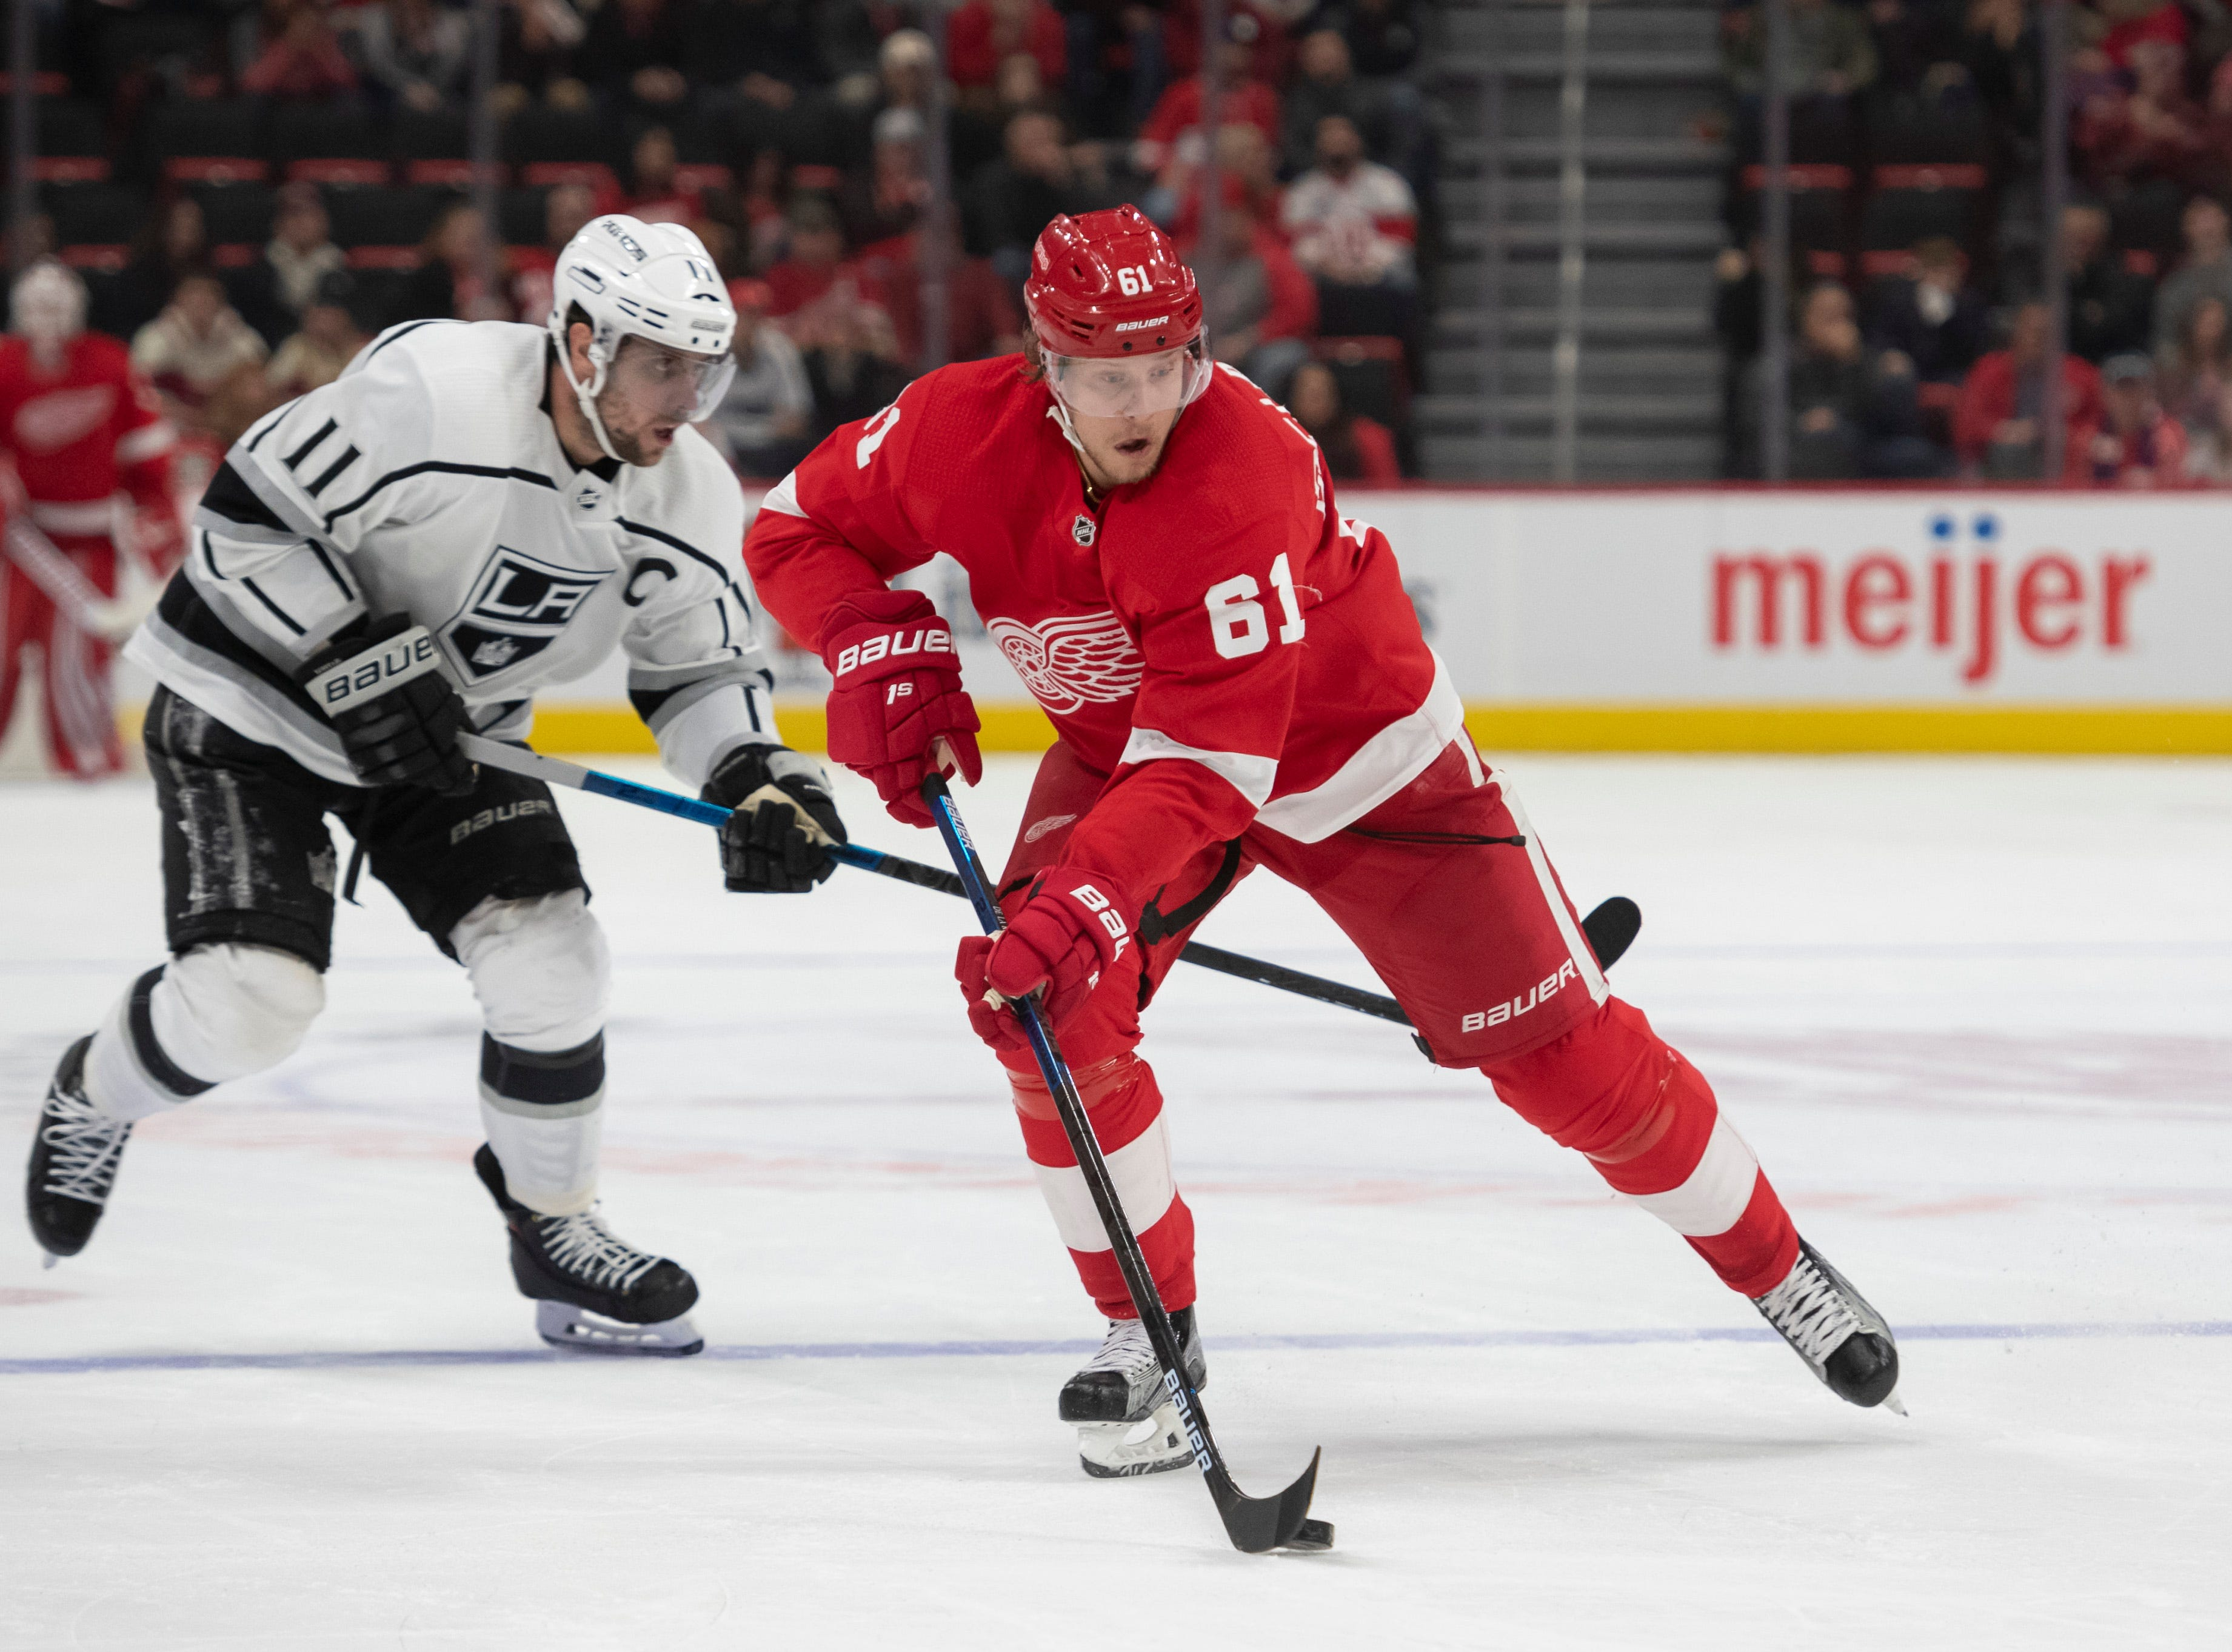 Detroit left wing Jacob De La Rose moves the puck away from Los Angeles center Anze Kopitar in the third period.